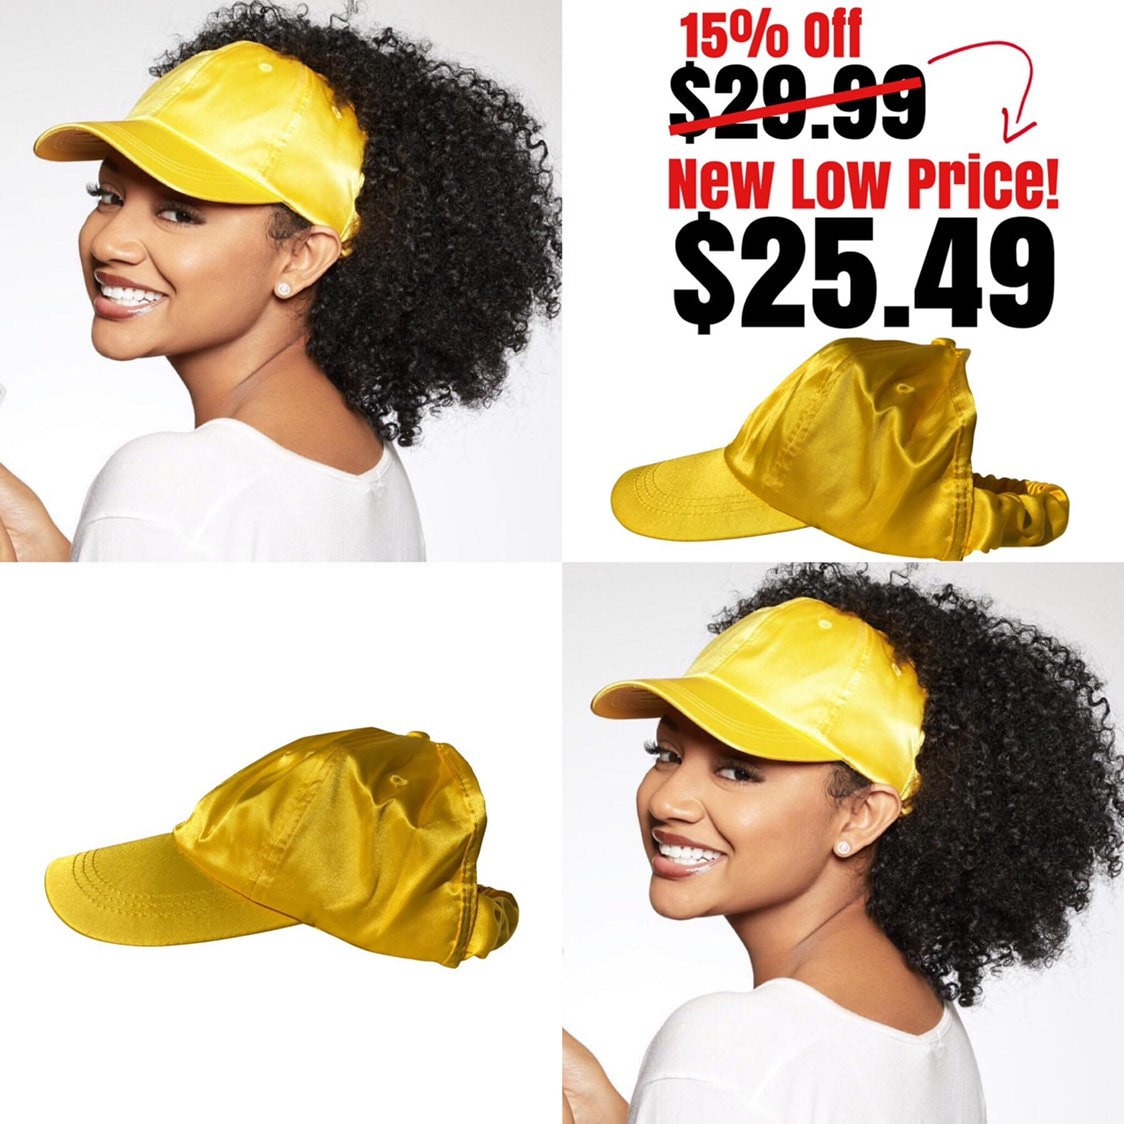 53f0ce80fa4 Satin Lined Baseball Backless Cap Yellow dad hat Protective